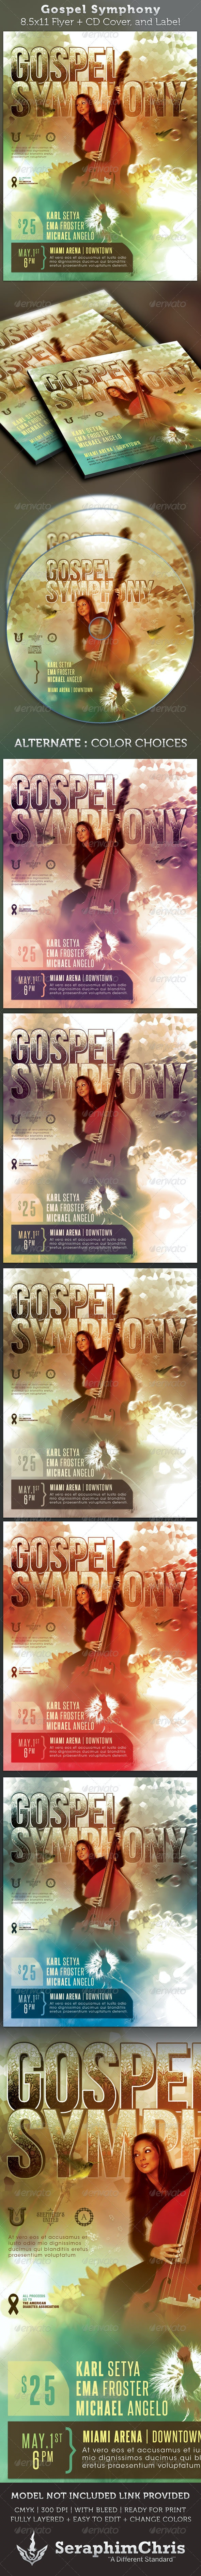 Gospel Symphony Full Page Flyer and CD Cover - Church Flyers